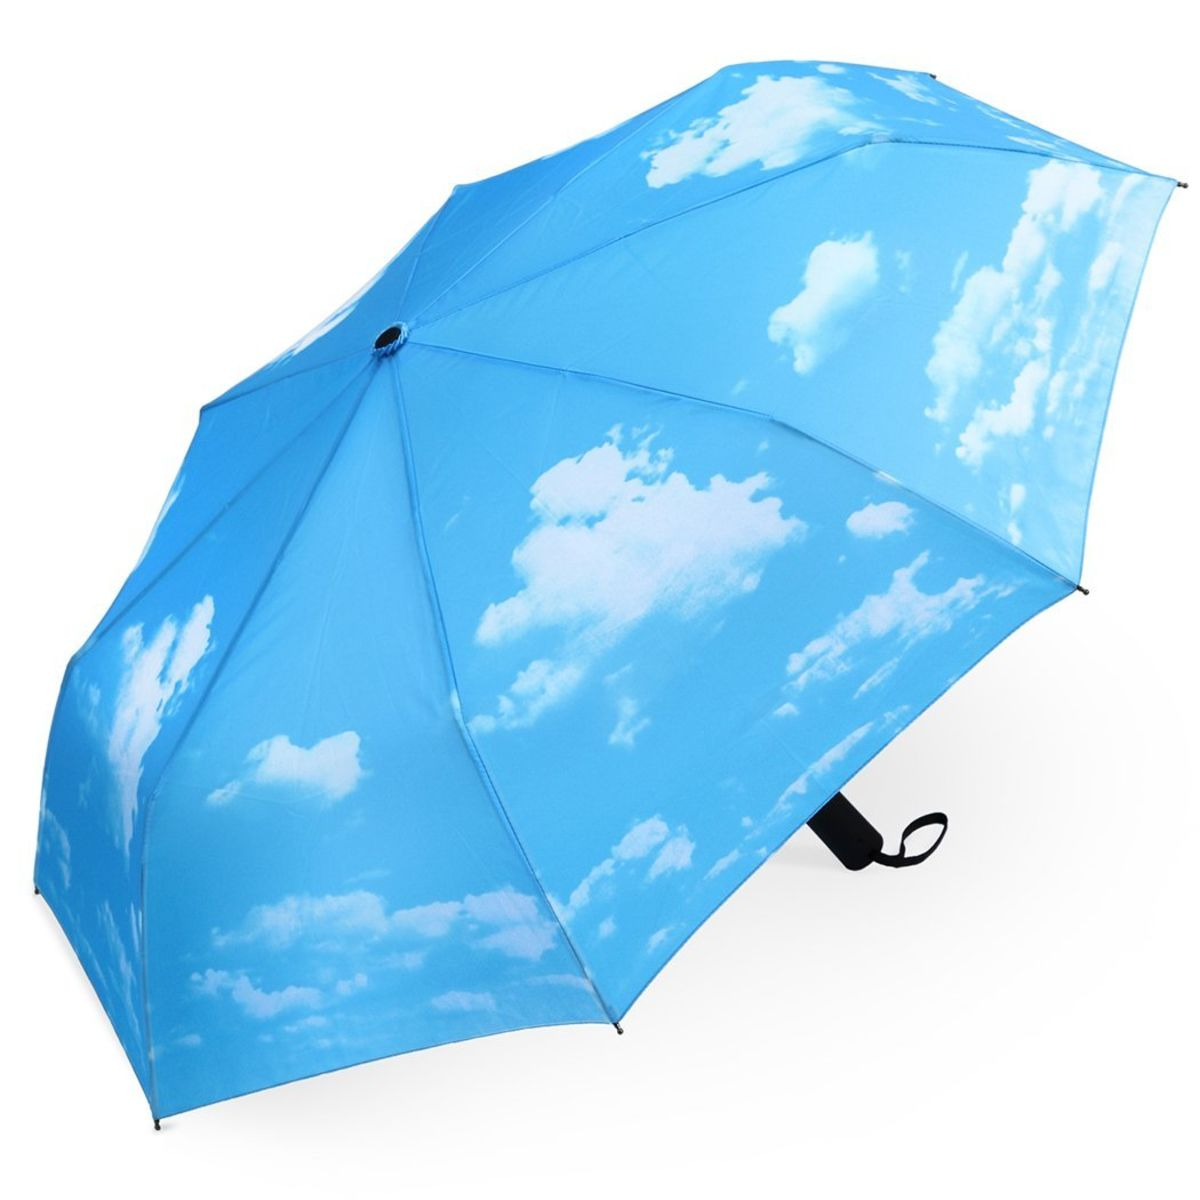 Headline for Best Automatic Folding Travel Umbrellas